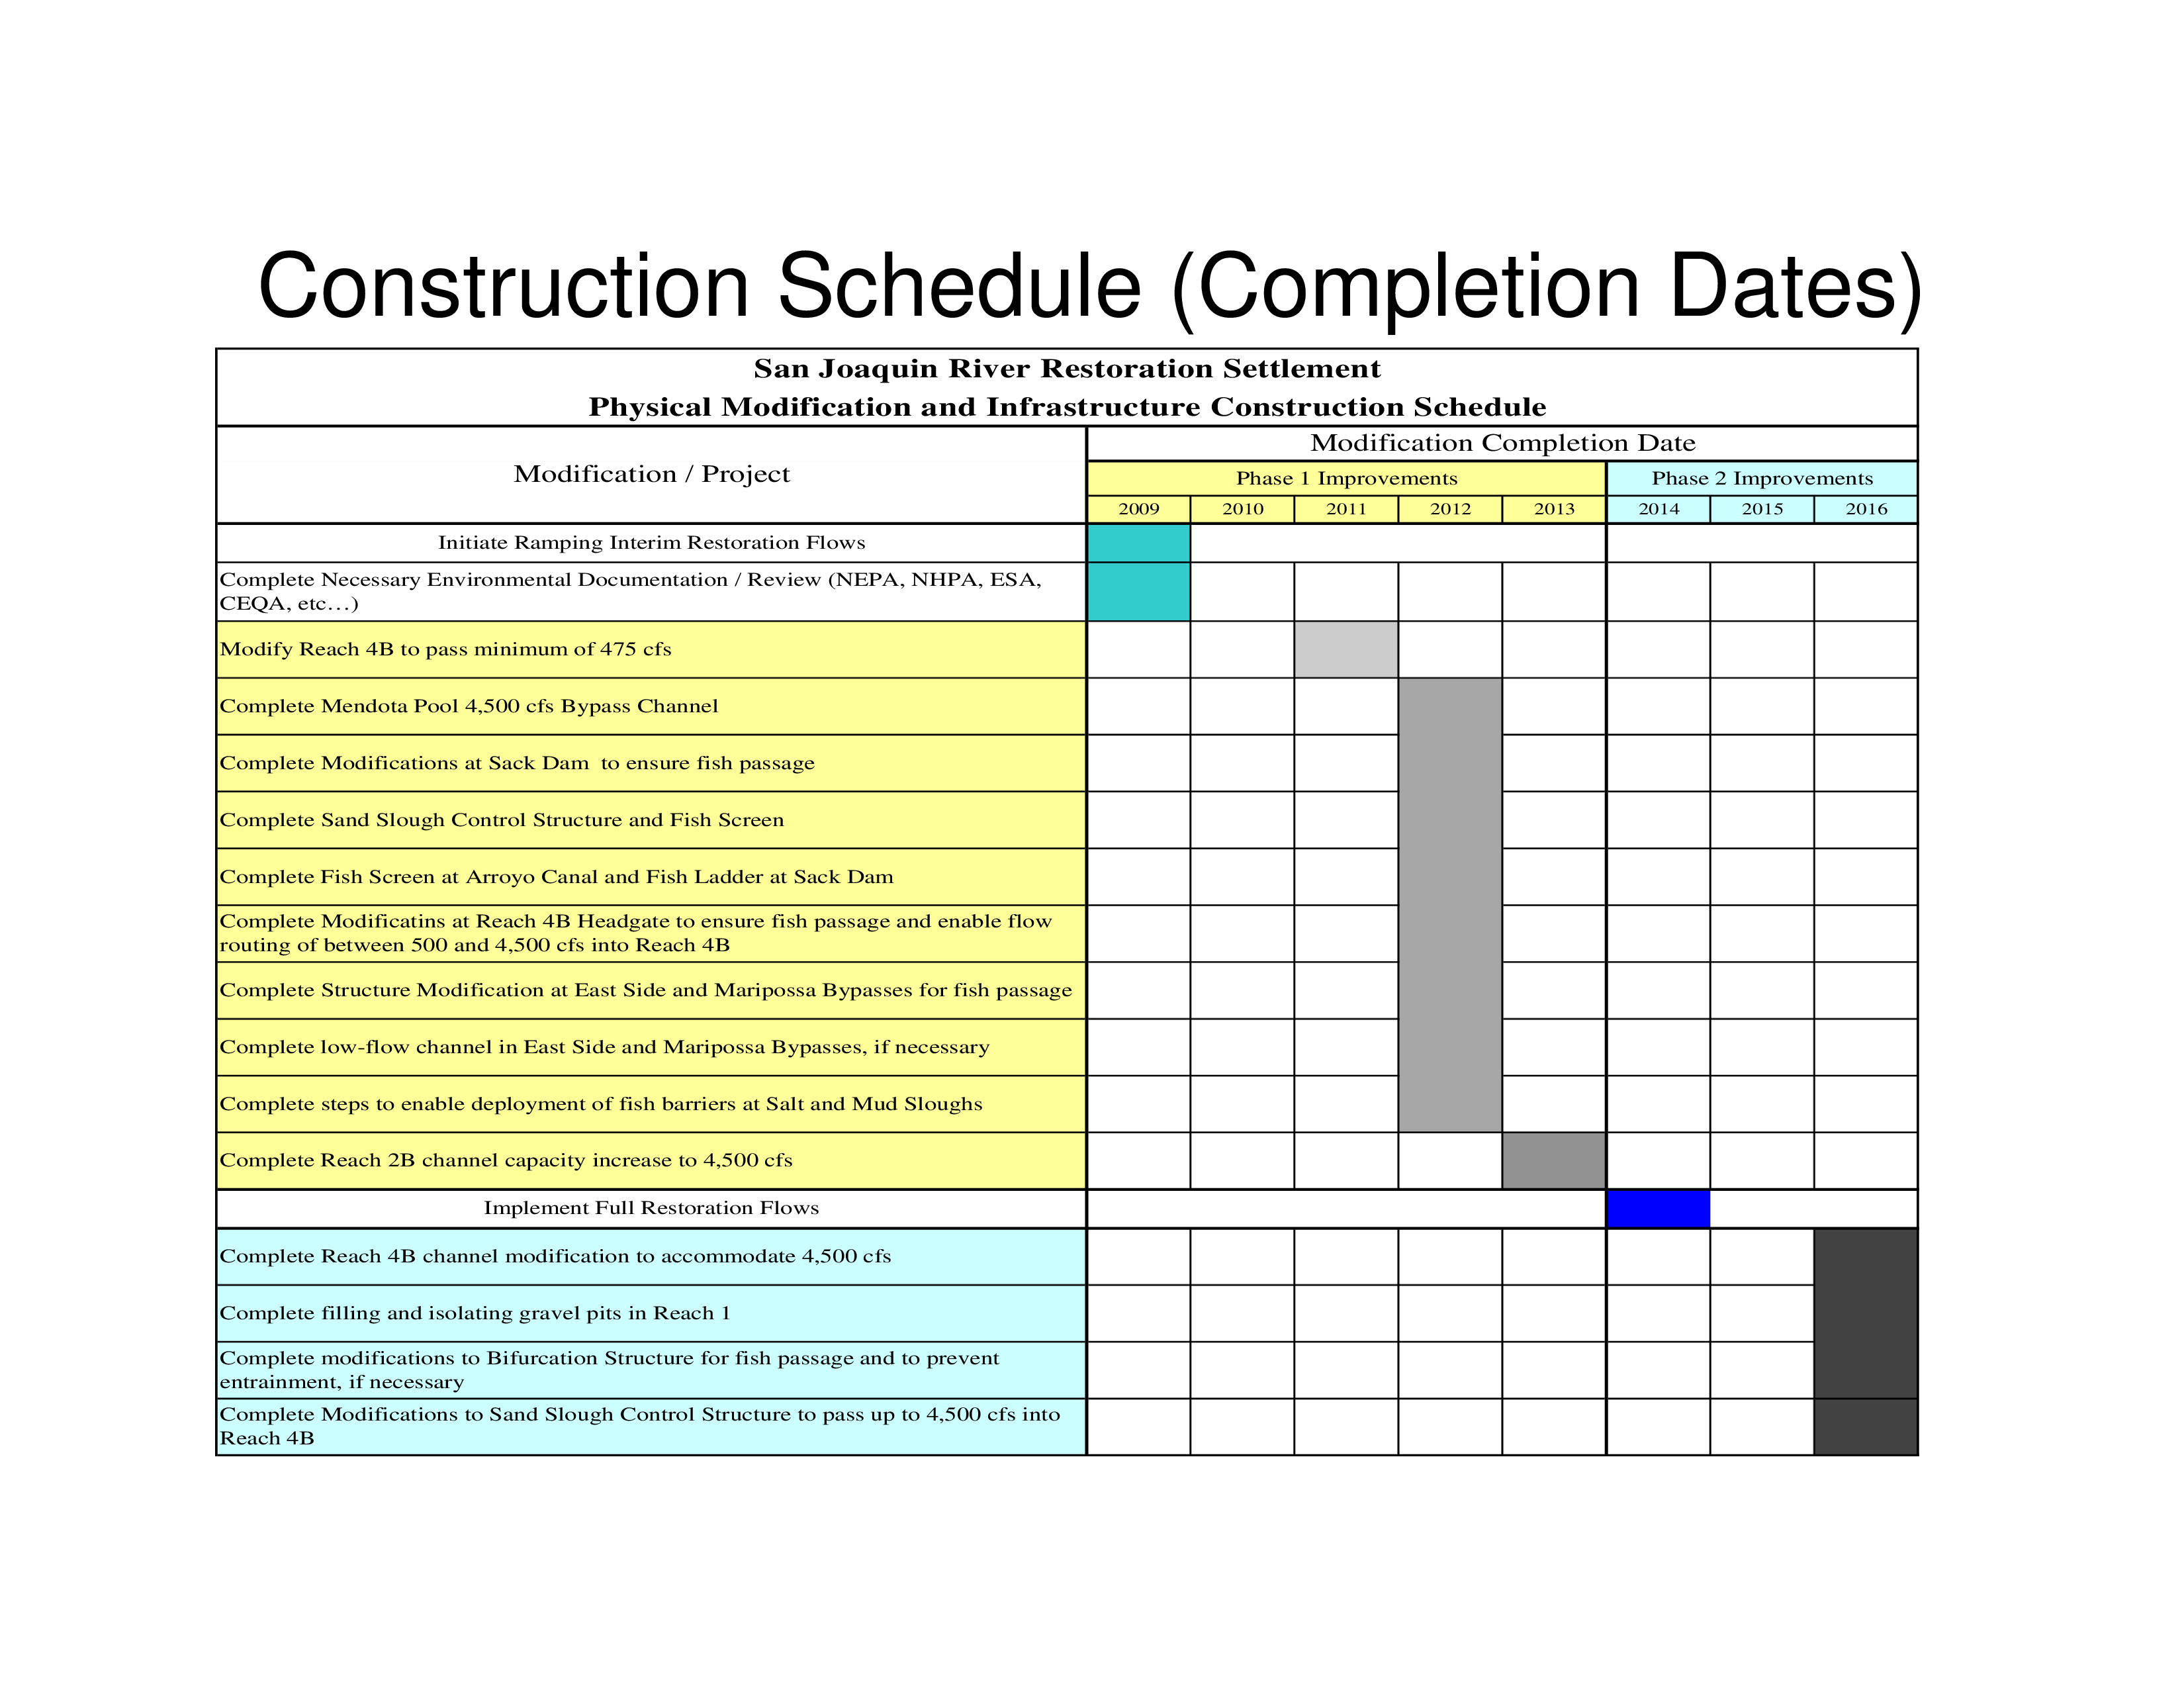 Construction Schedule Sample | Templates at ...